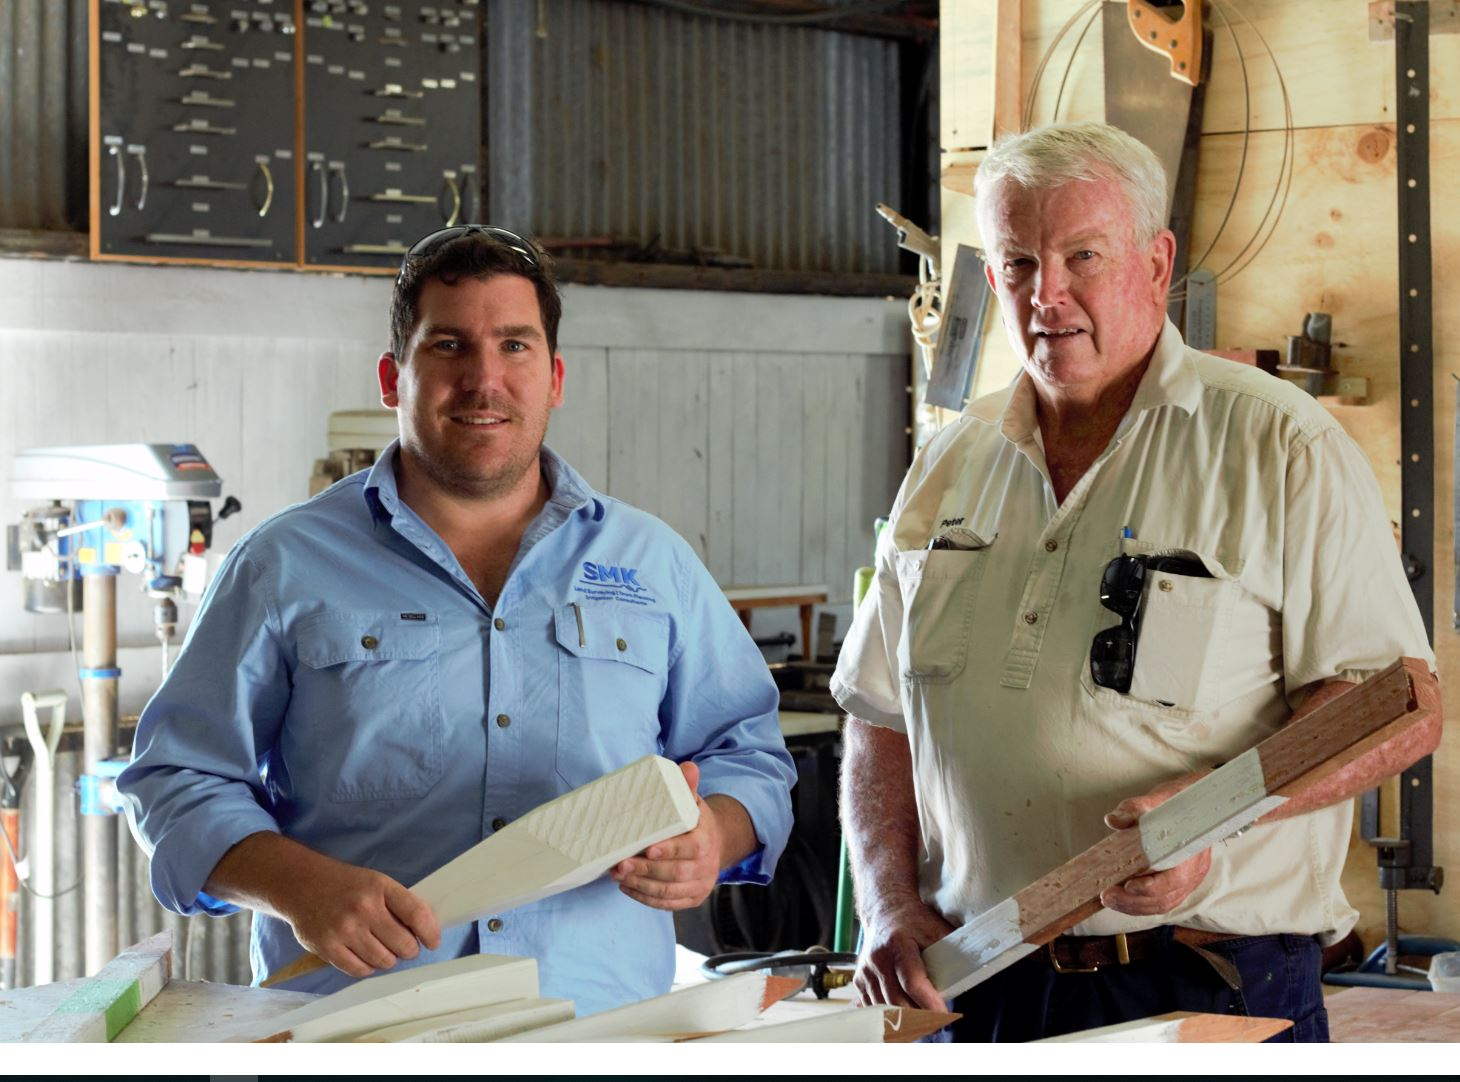 SMK and Goondiwindi Men's Shed representatives working together to supply to Inland Rail